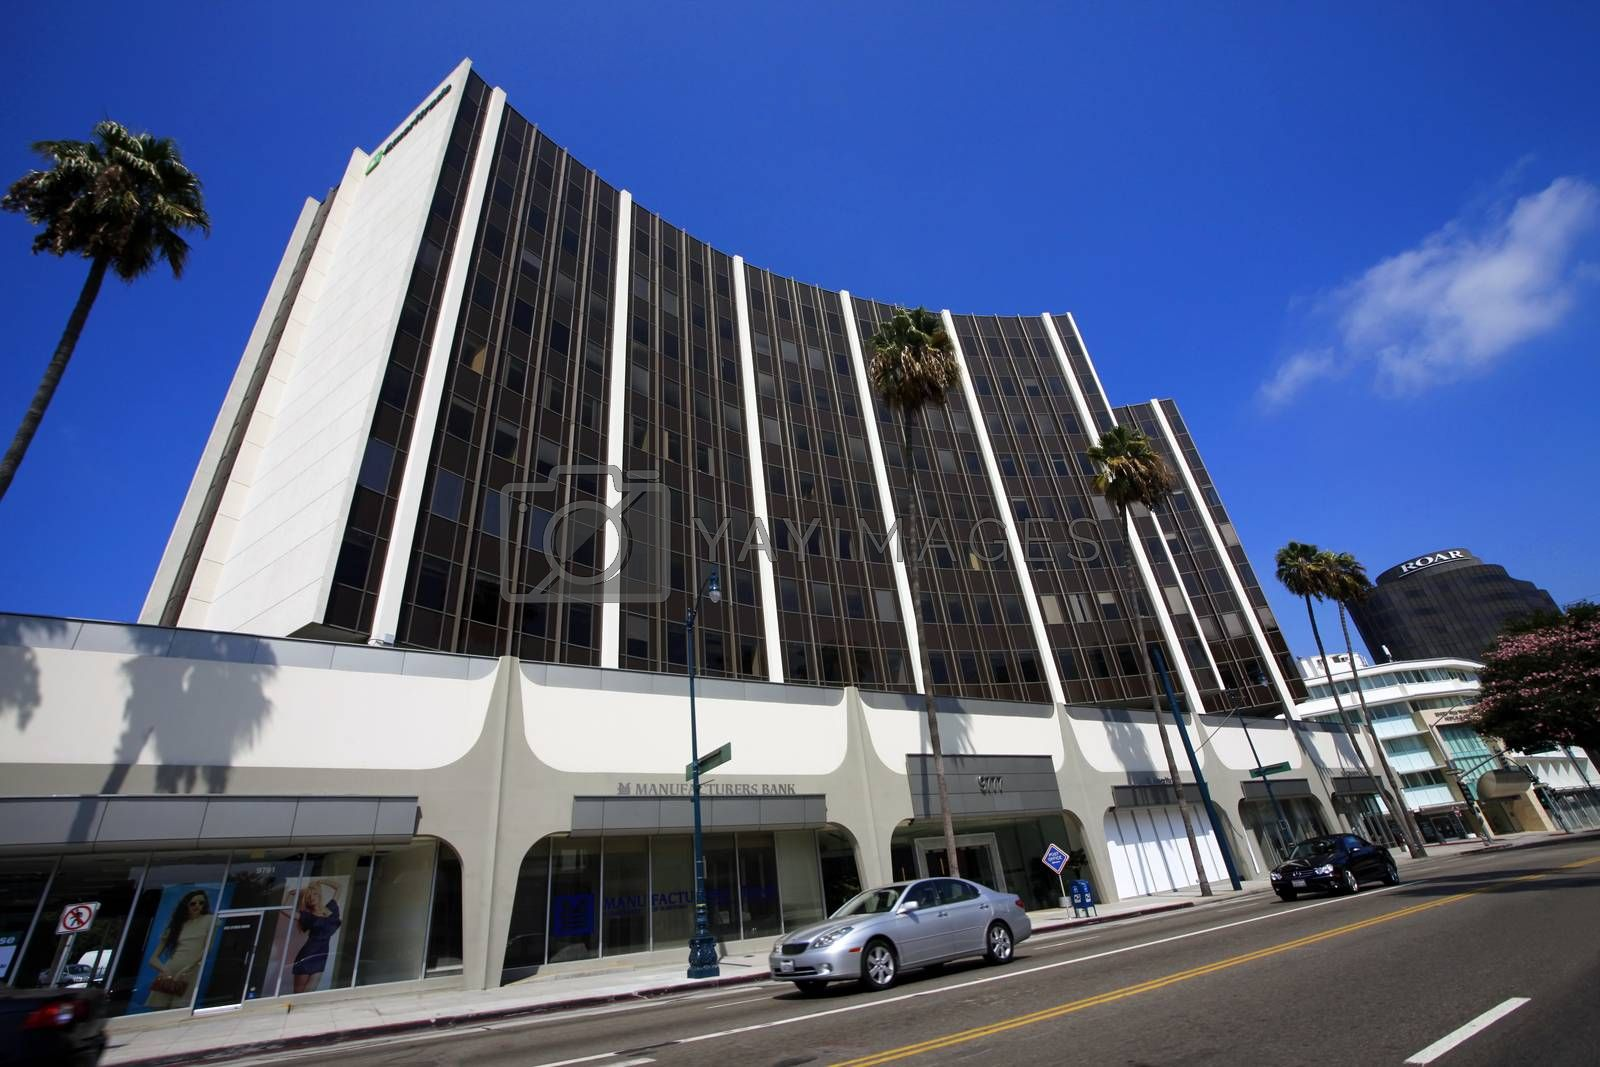 Los Angeles, CA, USA - September 18, 2011 : Modern Office Buildings.   Manufacturers Bank on Beverly Hills, CA